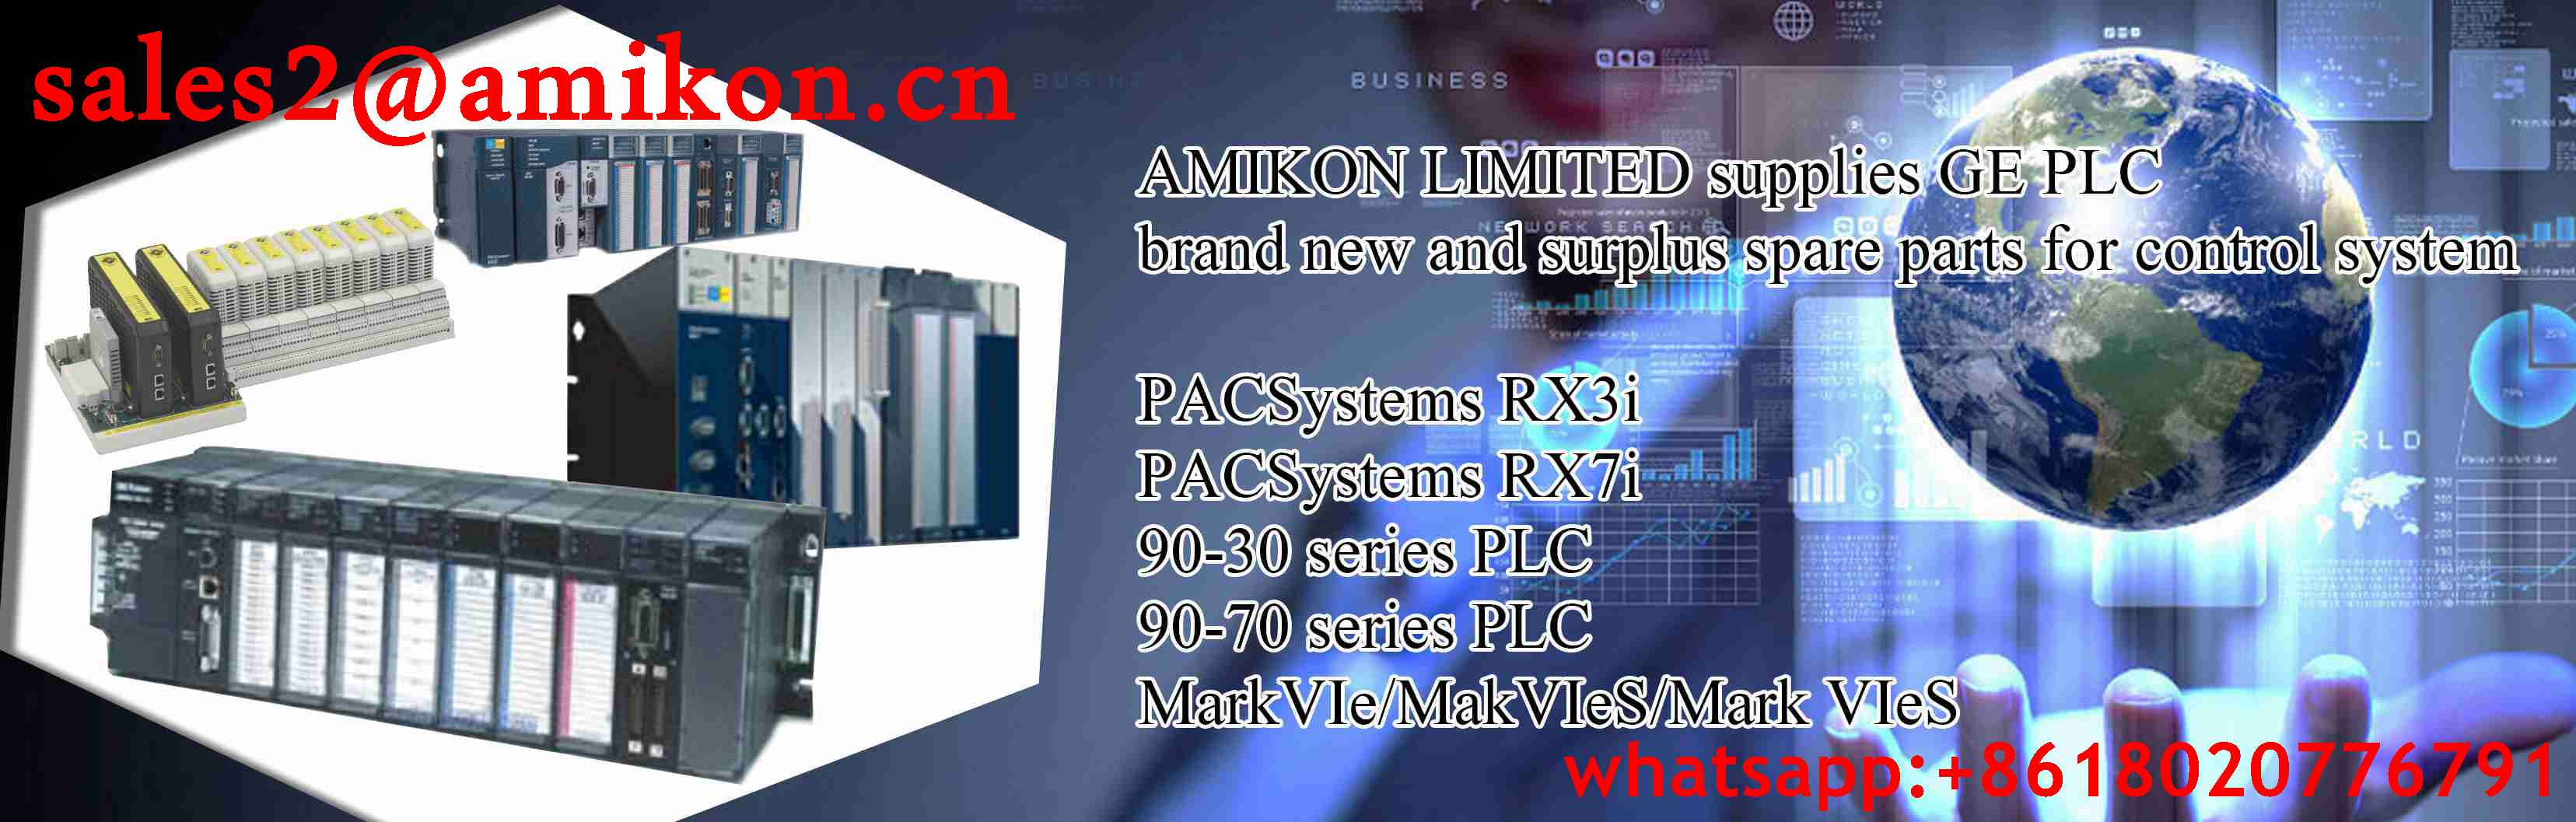 IC697BEM733 GE General Electric sales2@amikon.cn PLC DCS Industry Control System Module